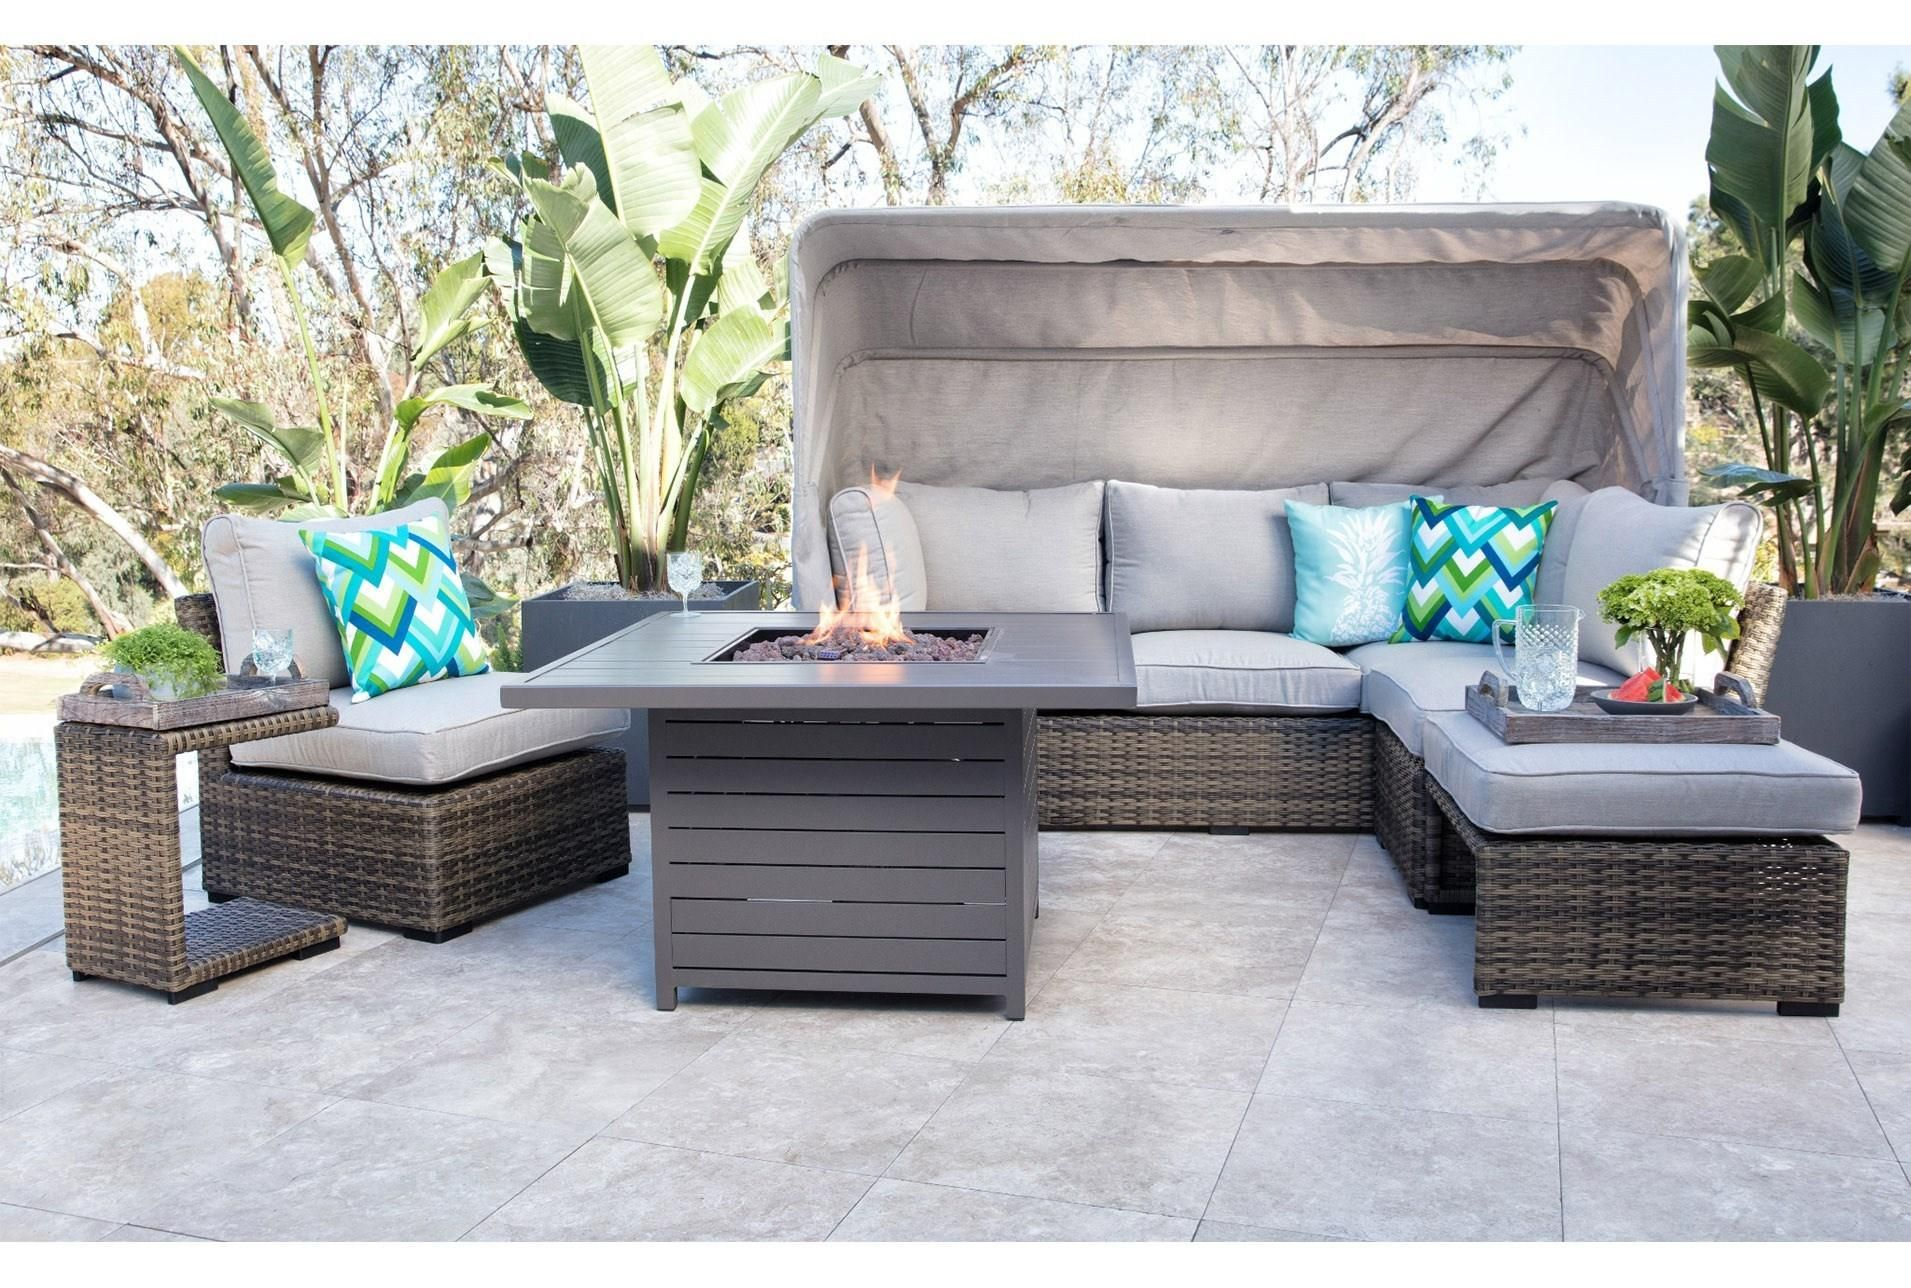 Outdoor Aventura II Daybed | Mediterranean home decor ... on Living Spaces Outdoor Daybed id=39317